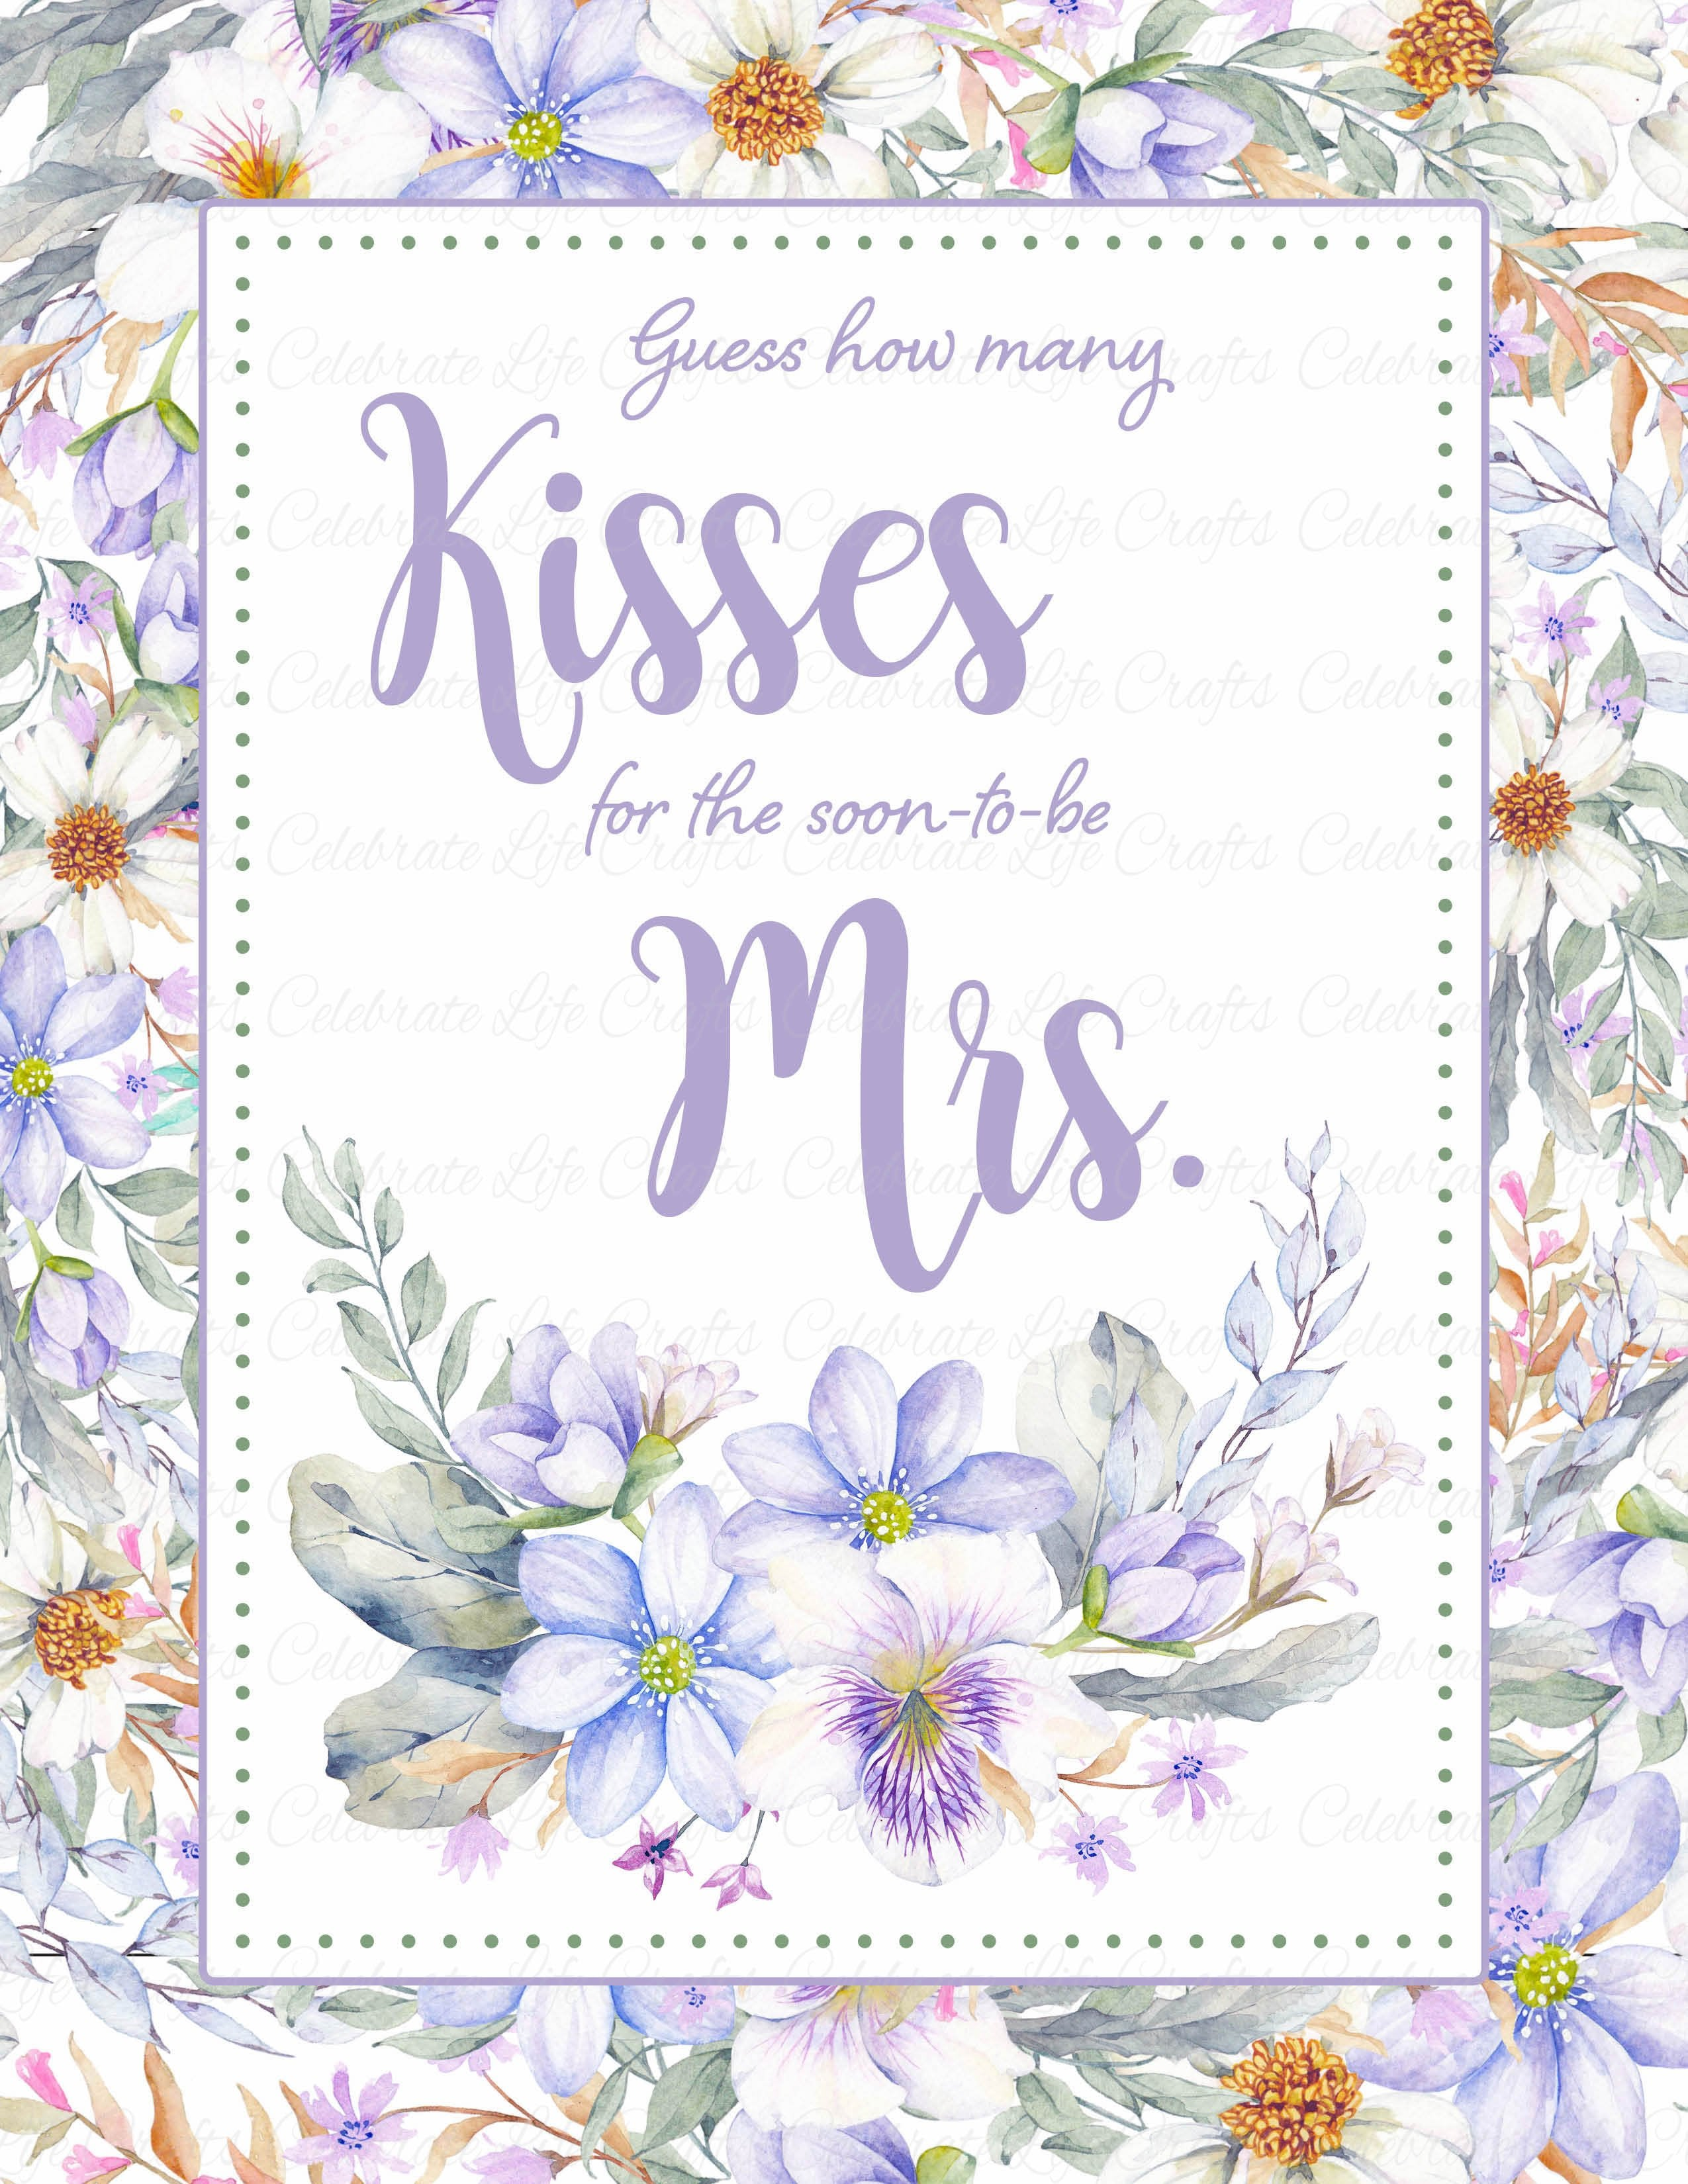 picture about Guess Who Cards Printable referred to as How Numerous Kisses Bridal Shower Activity Indication and Guessing